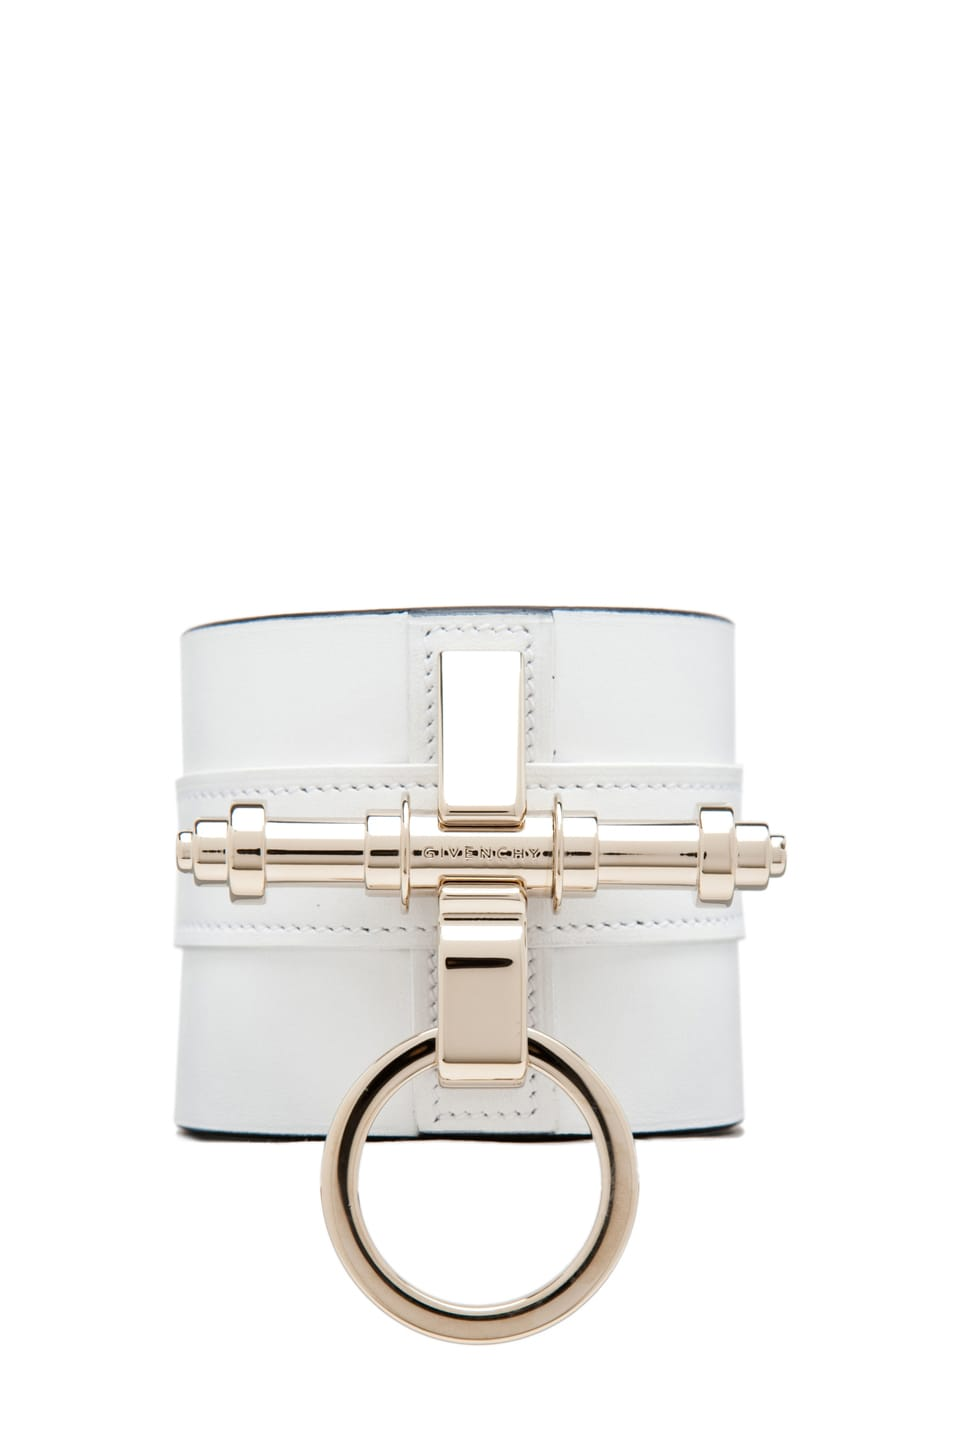 Image 1 of GIVENCHY Obsedia Large Cuff in White/Black